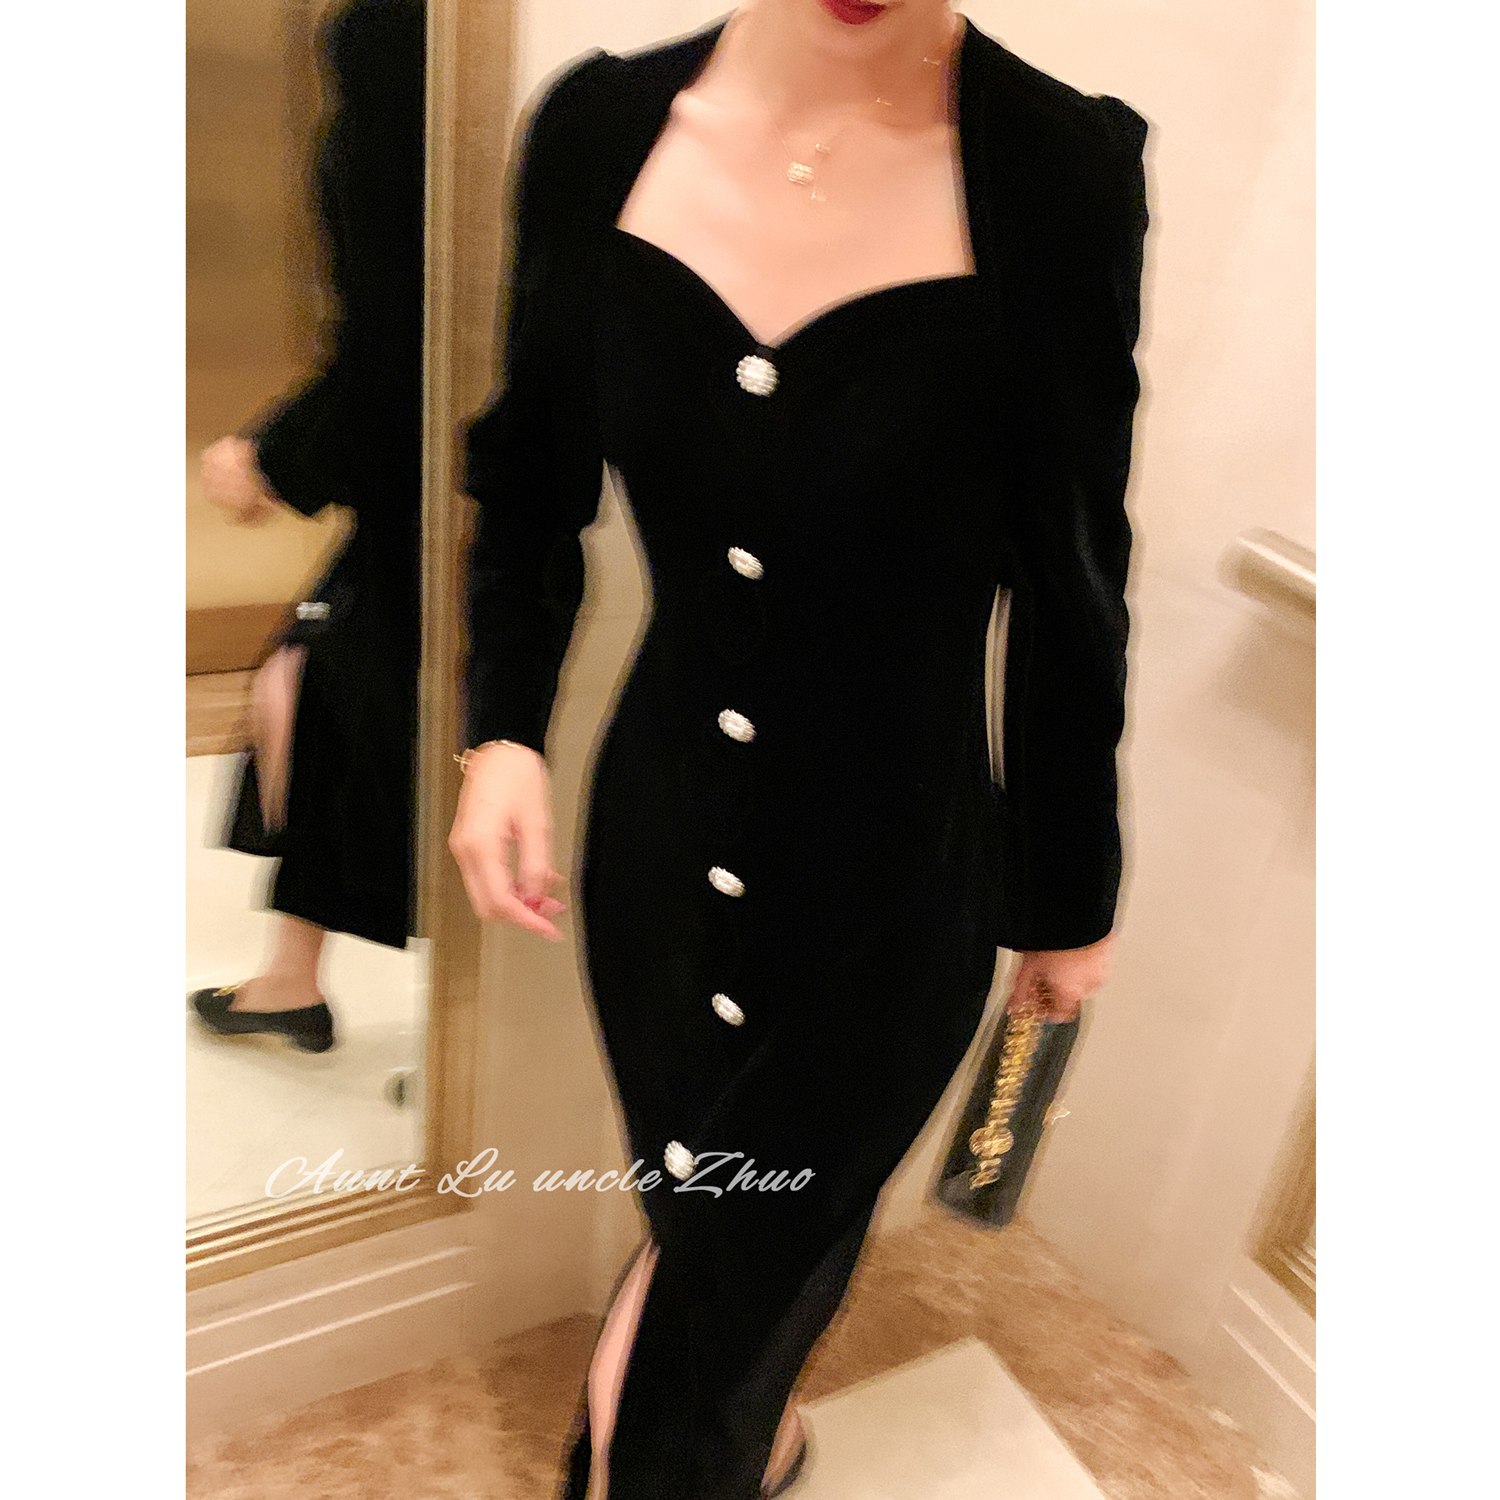 Aunt Deer Uncle ZhuoBlack velvet French v-neck dress goddess temperament slim dress 2020 new